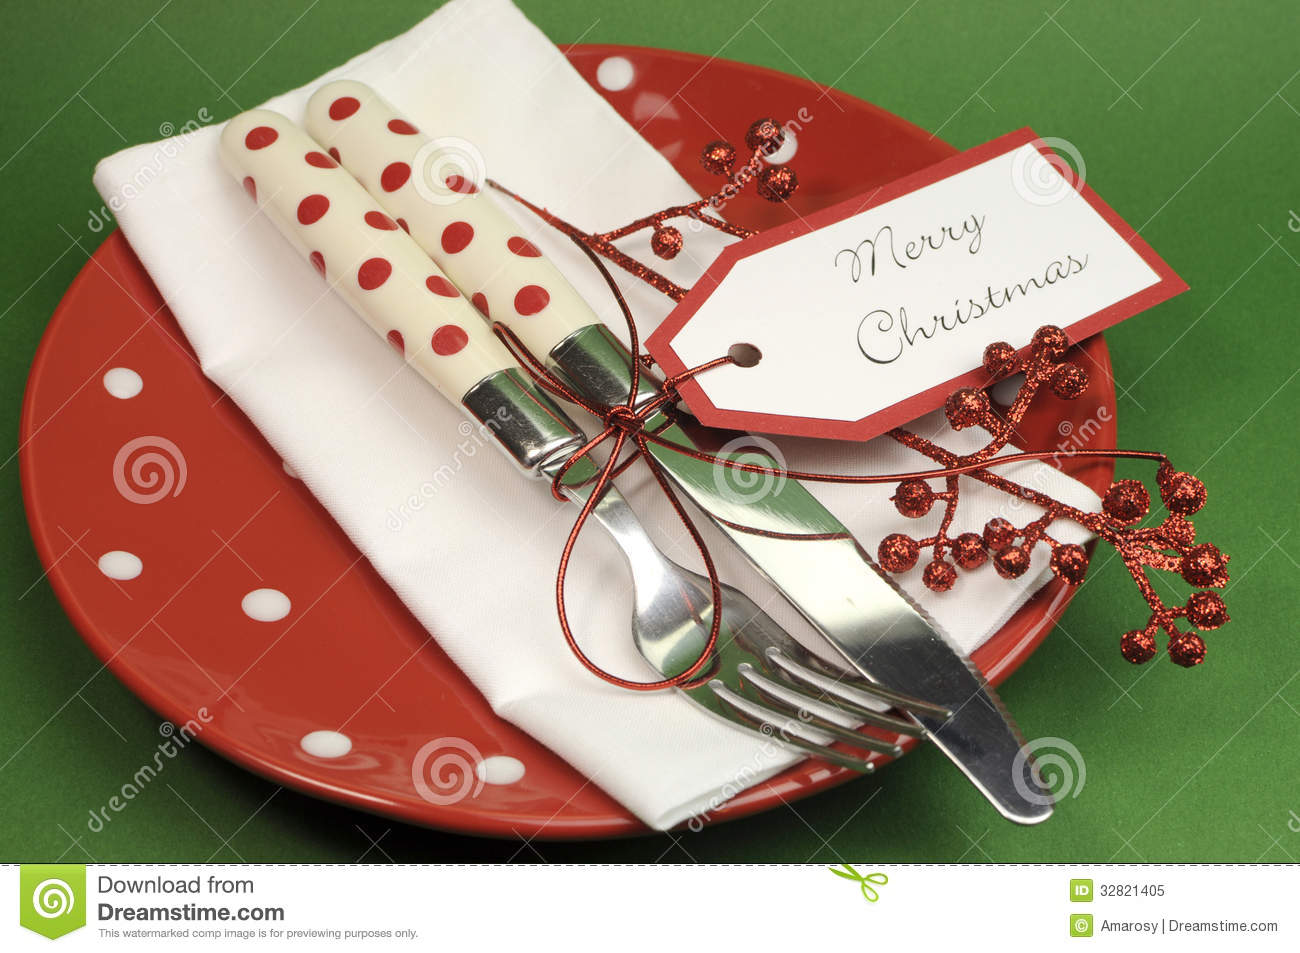 Red And Green Merry Christmas Dinner Table Place Setting